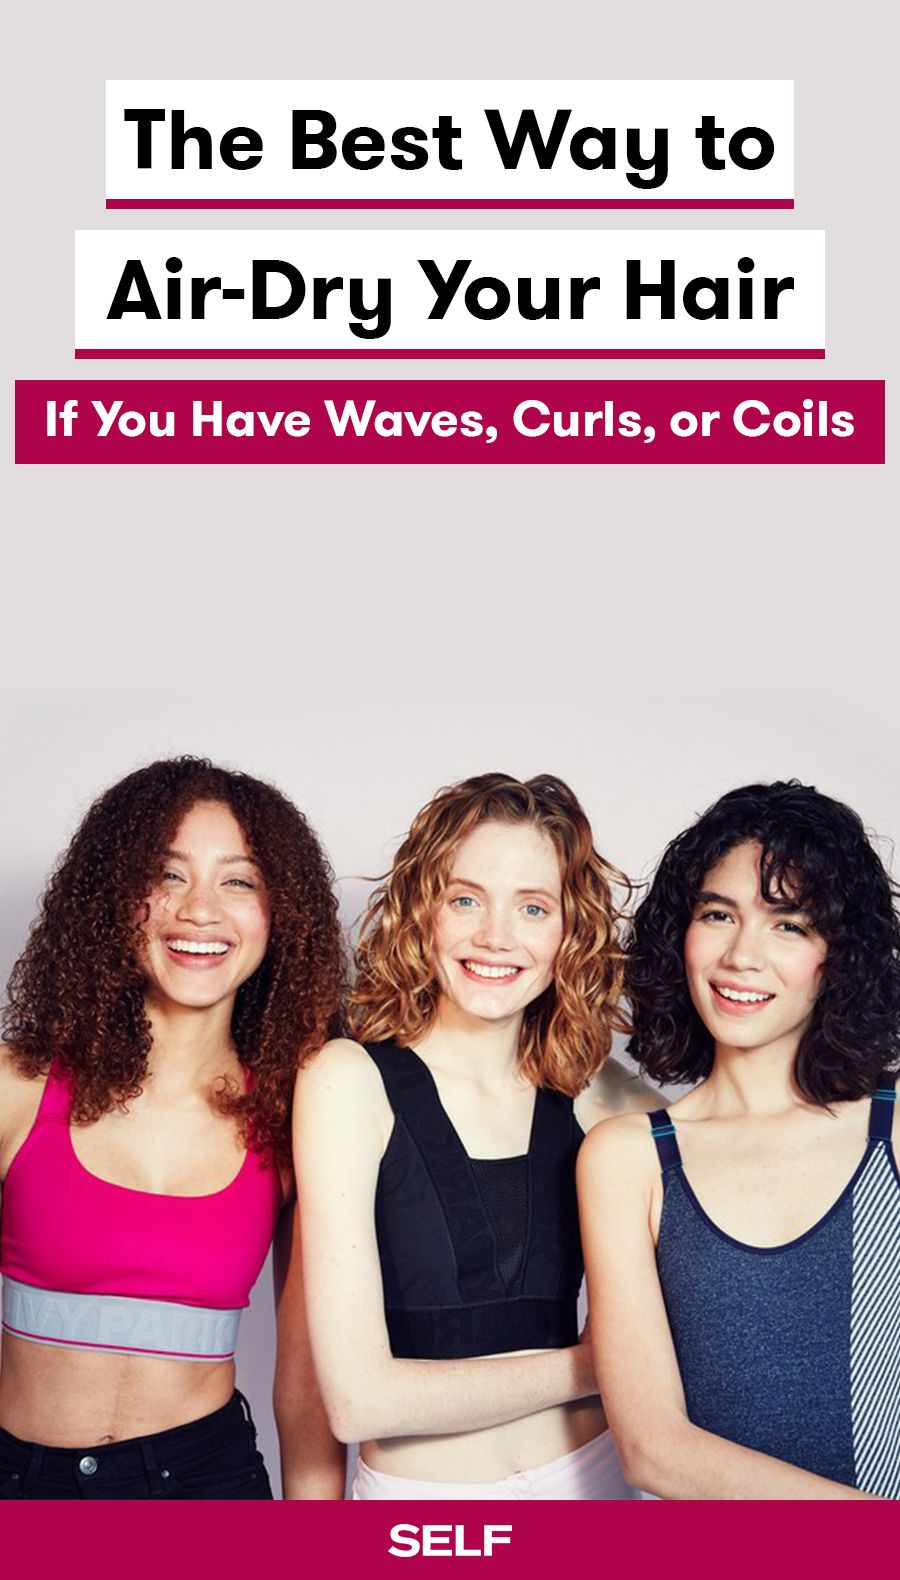 The Best Way to Air-Dry Your Hair If You Have Waves, Curls, or Coils | Air  dry hair, Natural wavy hair, Dry curly hair